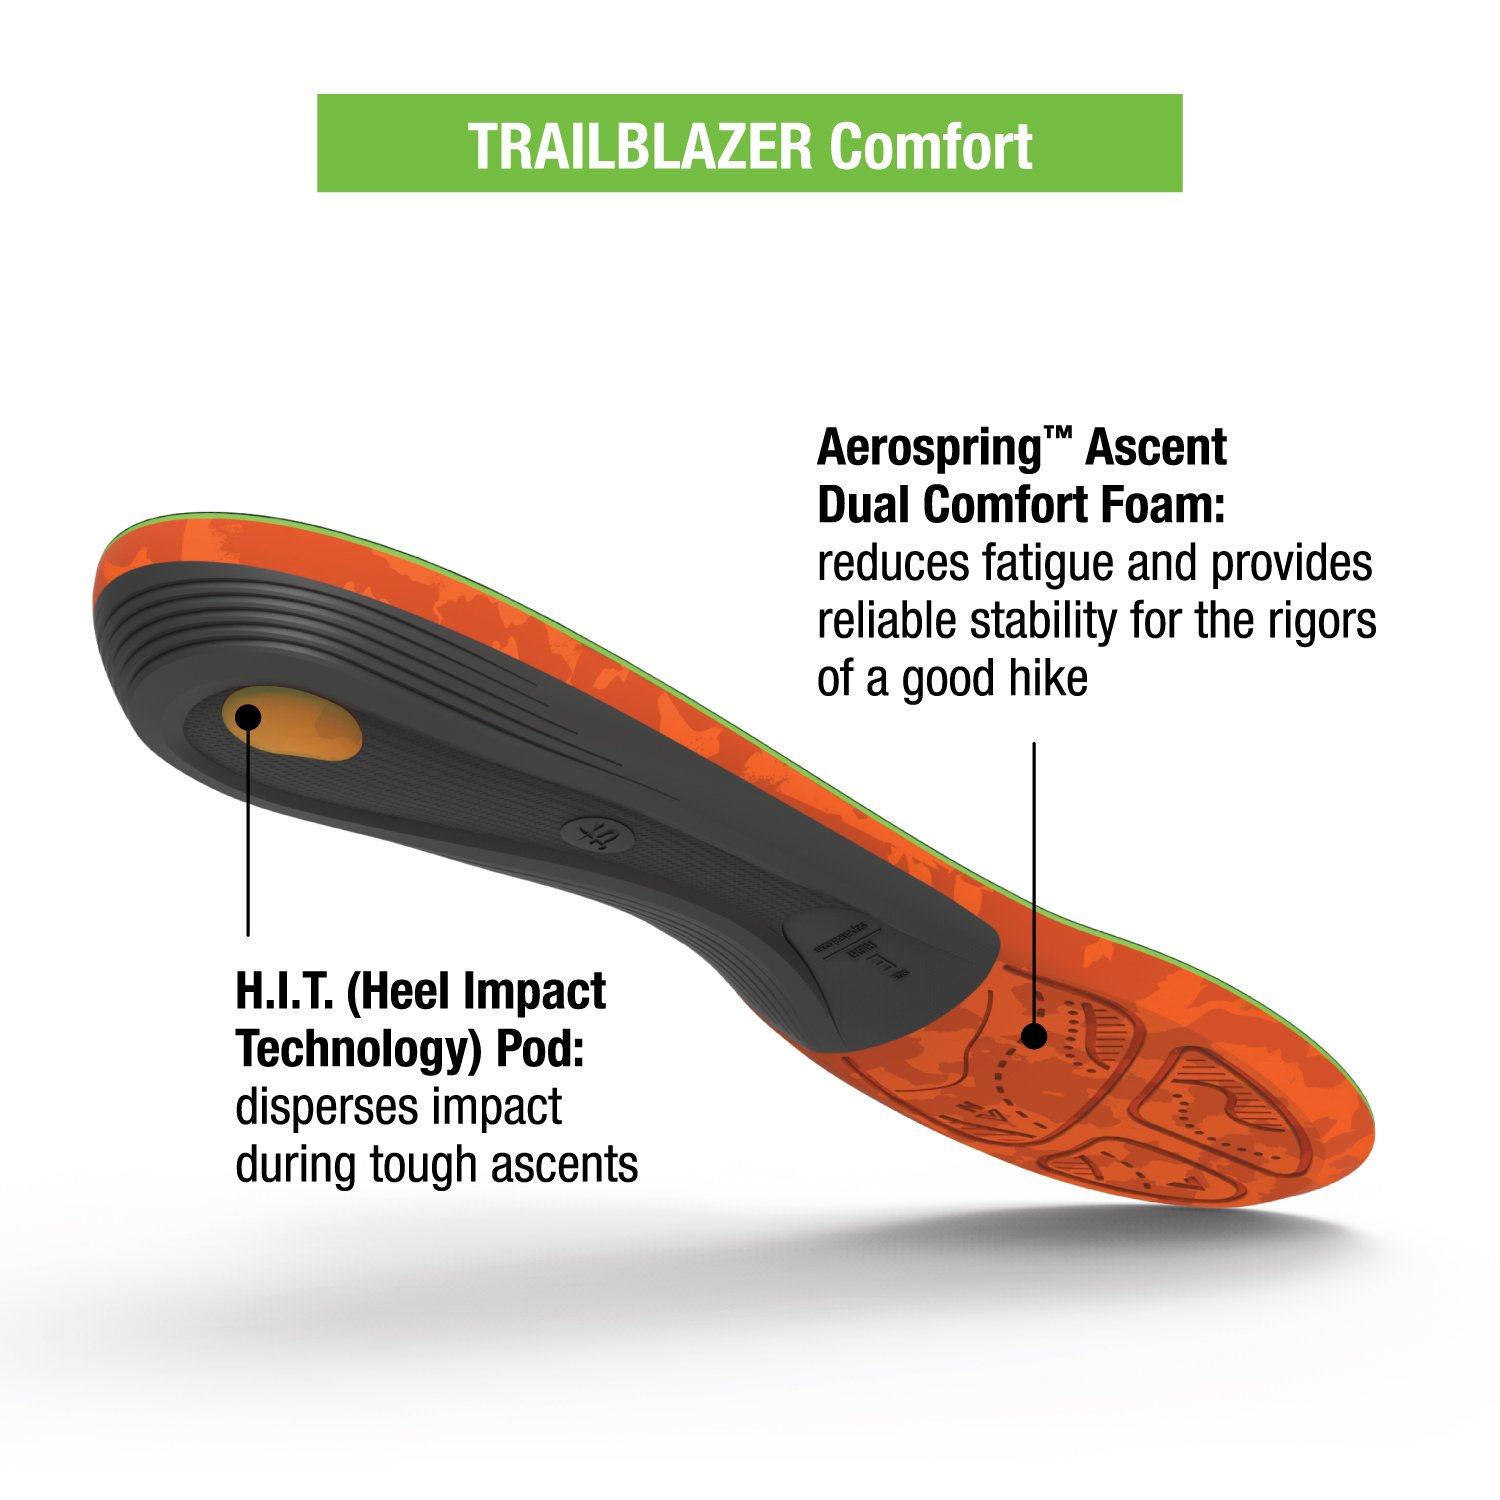 Superfeet Trailblazer Comfort Insoles for Carbon Fiber Orthotic Support and Cushion in Hiking Boots and Trail Shoes, Pine, F: 12+ US Womens / 11.5-13 US Mens by Superfeet (Image #4)